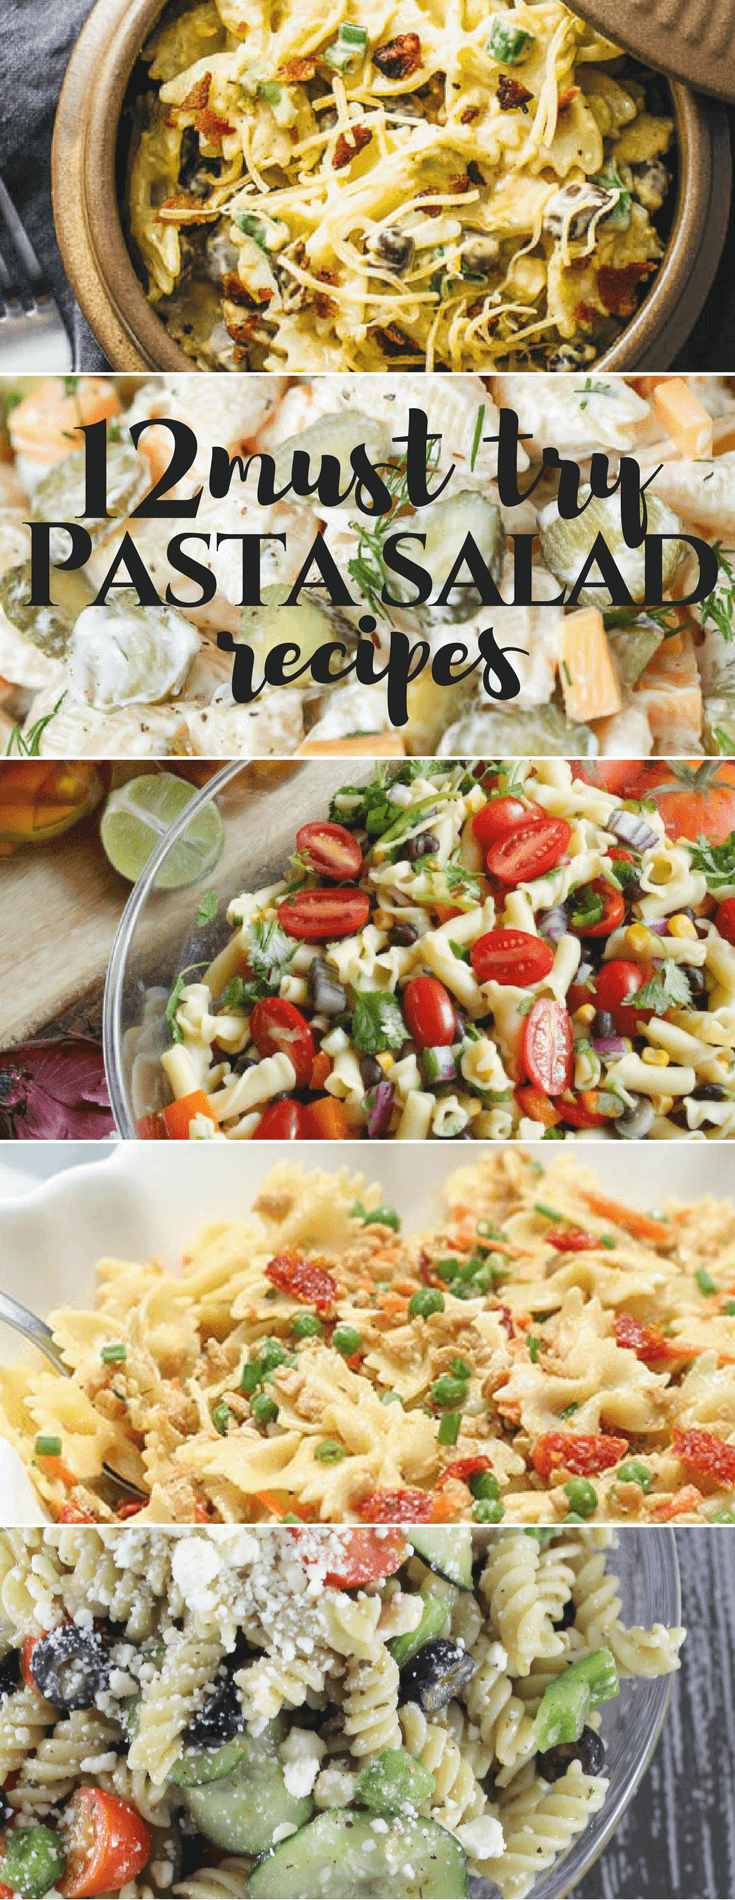 12 Must Try Pasta Salad Recipes